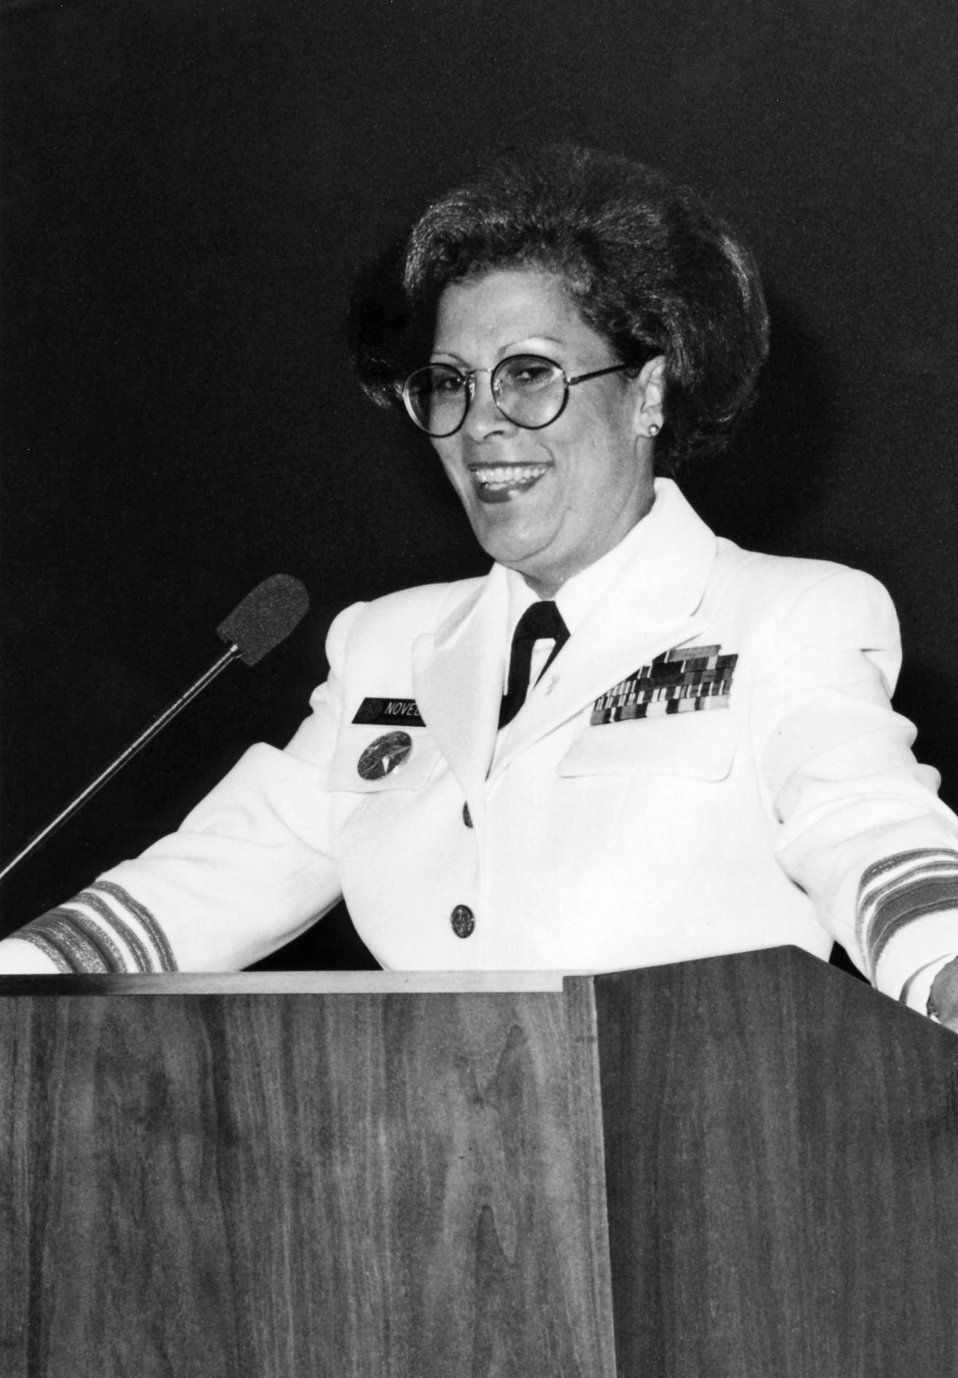 This photograph shows U.S. Surgeon General, Antonia C. Novello at a podium while she addressed Centers for Disease Control personnel during